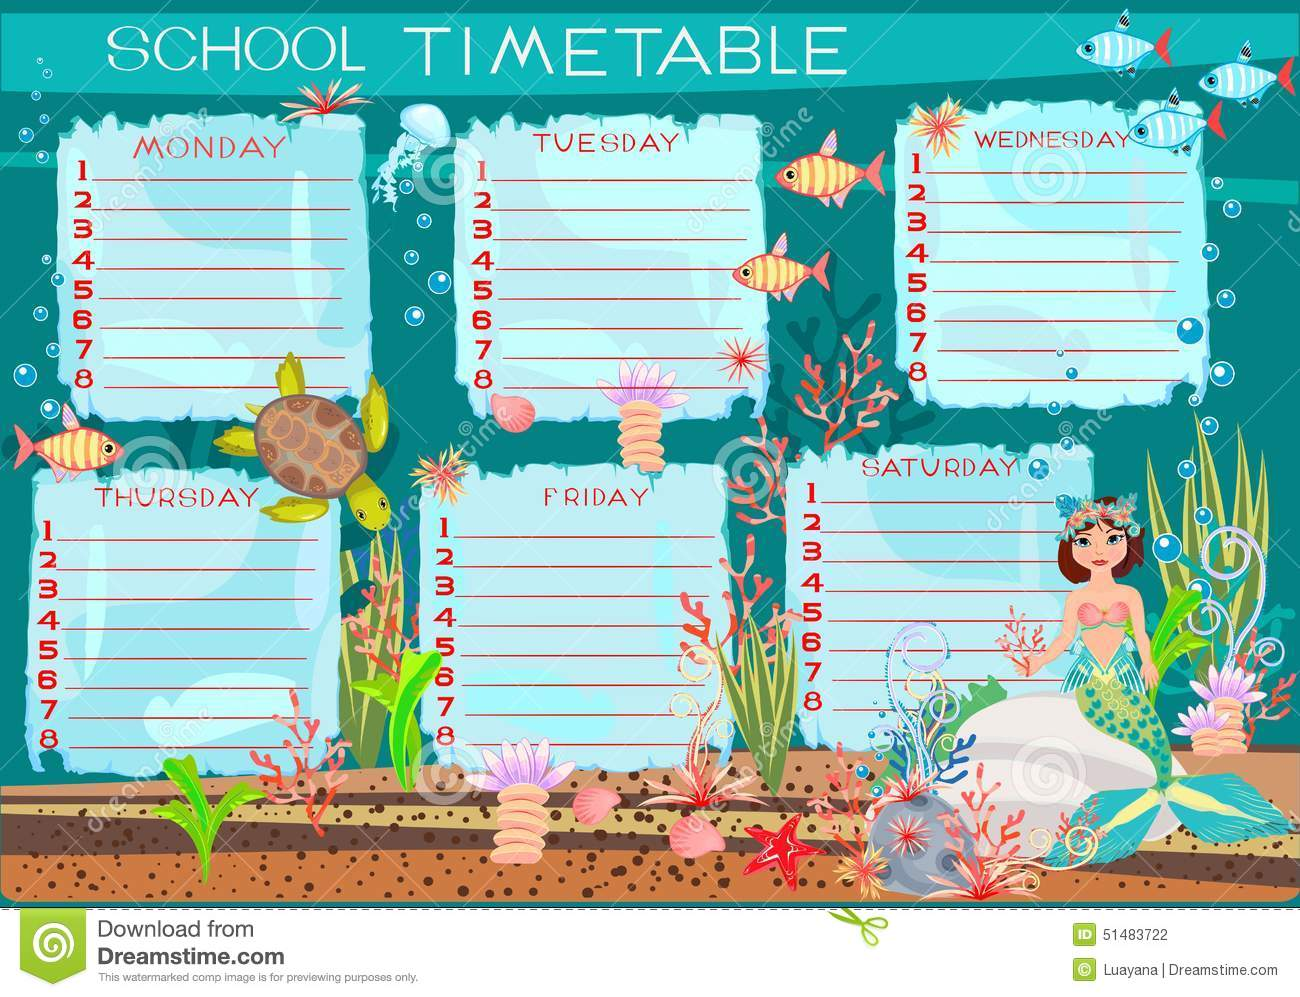 School Timetable With Mermaid Stock Vector - Image: 51483722